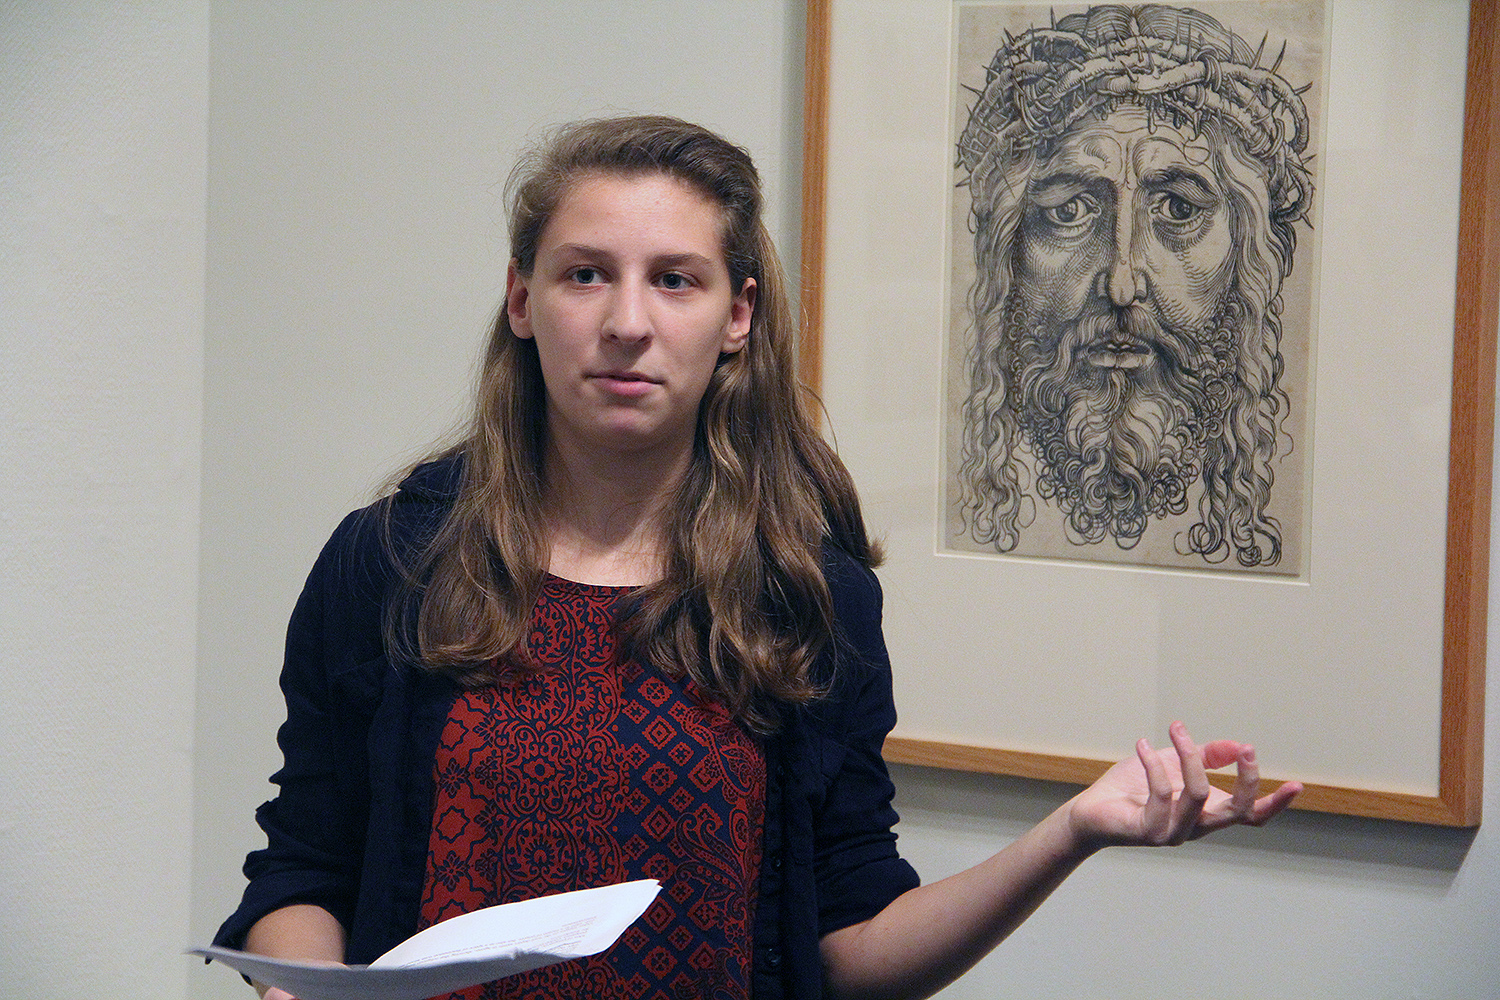 During the exhibition opening, student curators led a gallery talk that explored topics such as the fascination with the Apocalypse, printmaking and the rise of the Reformation, the use of prints as propaganda for Holy Roman Emperor Maximilian I, and the new interest in scientific observation and the natural world.